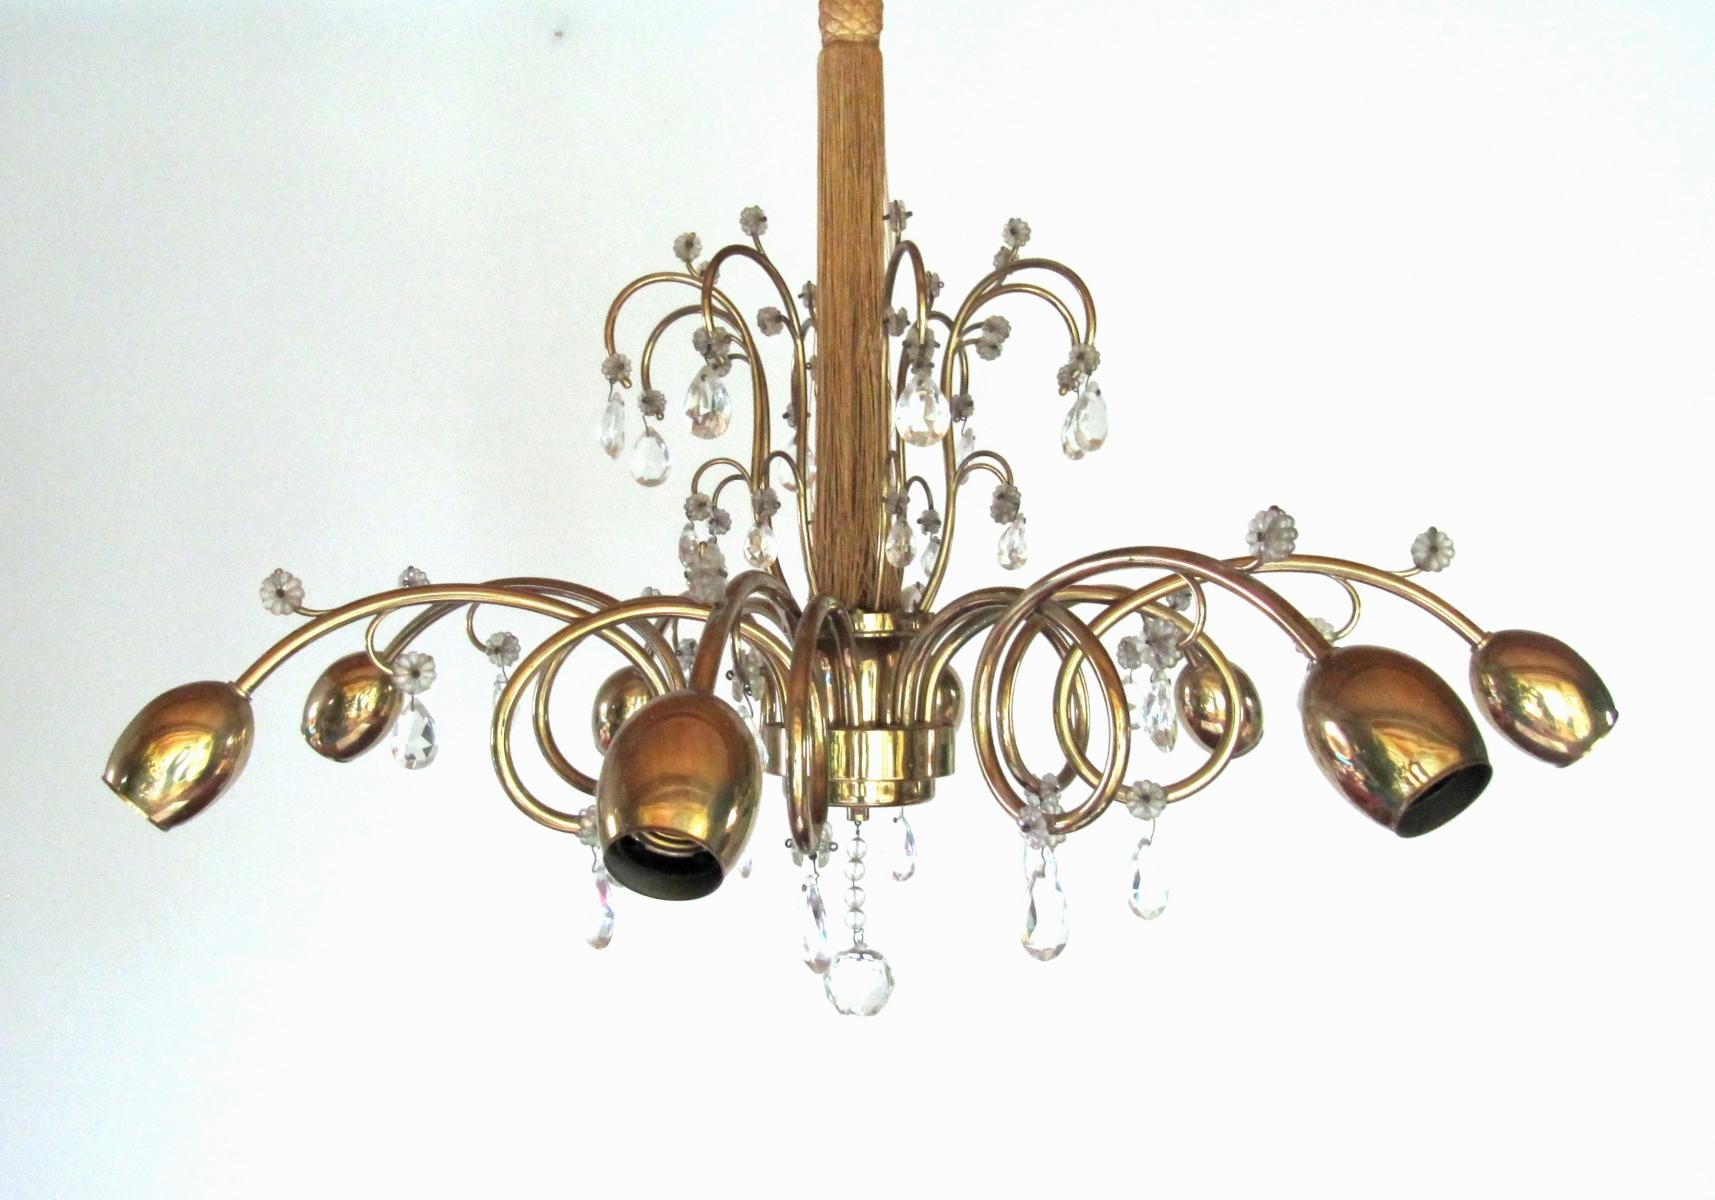 Large Austrian Art Deco Chandelier From Jl Lobmeyr For Sale At Pamono In Large Art Deco Chandelier (Image 11 of 15)